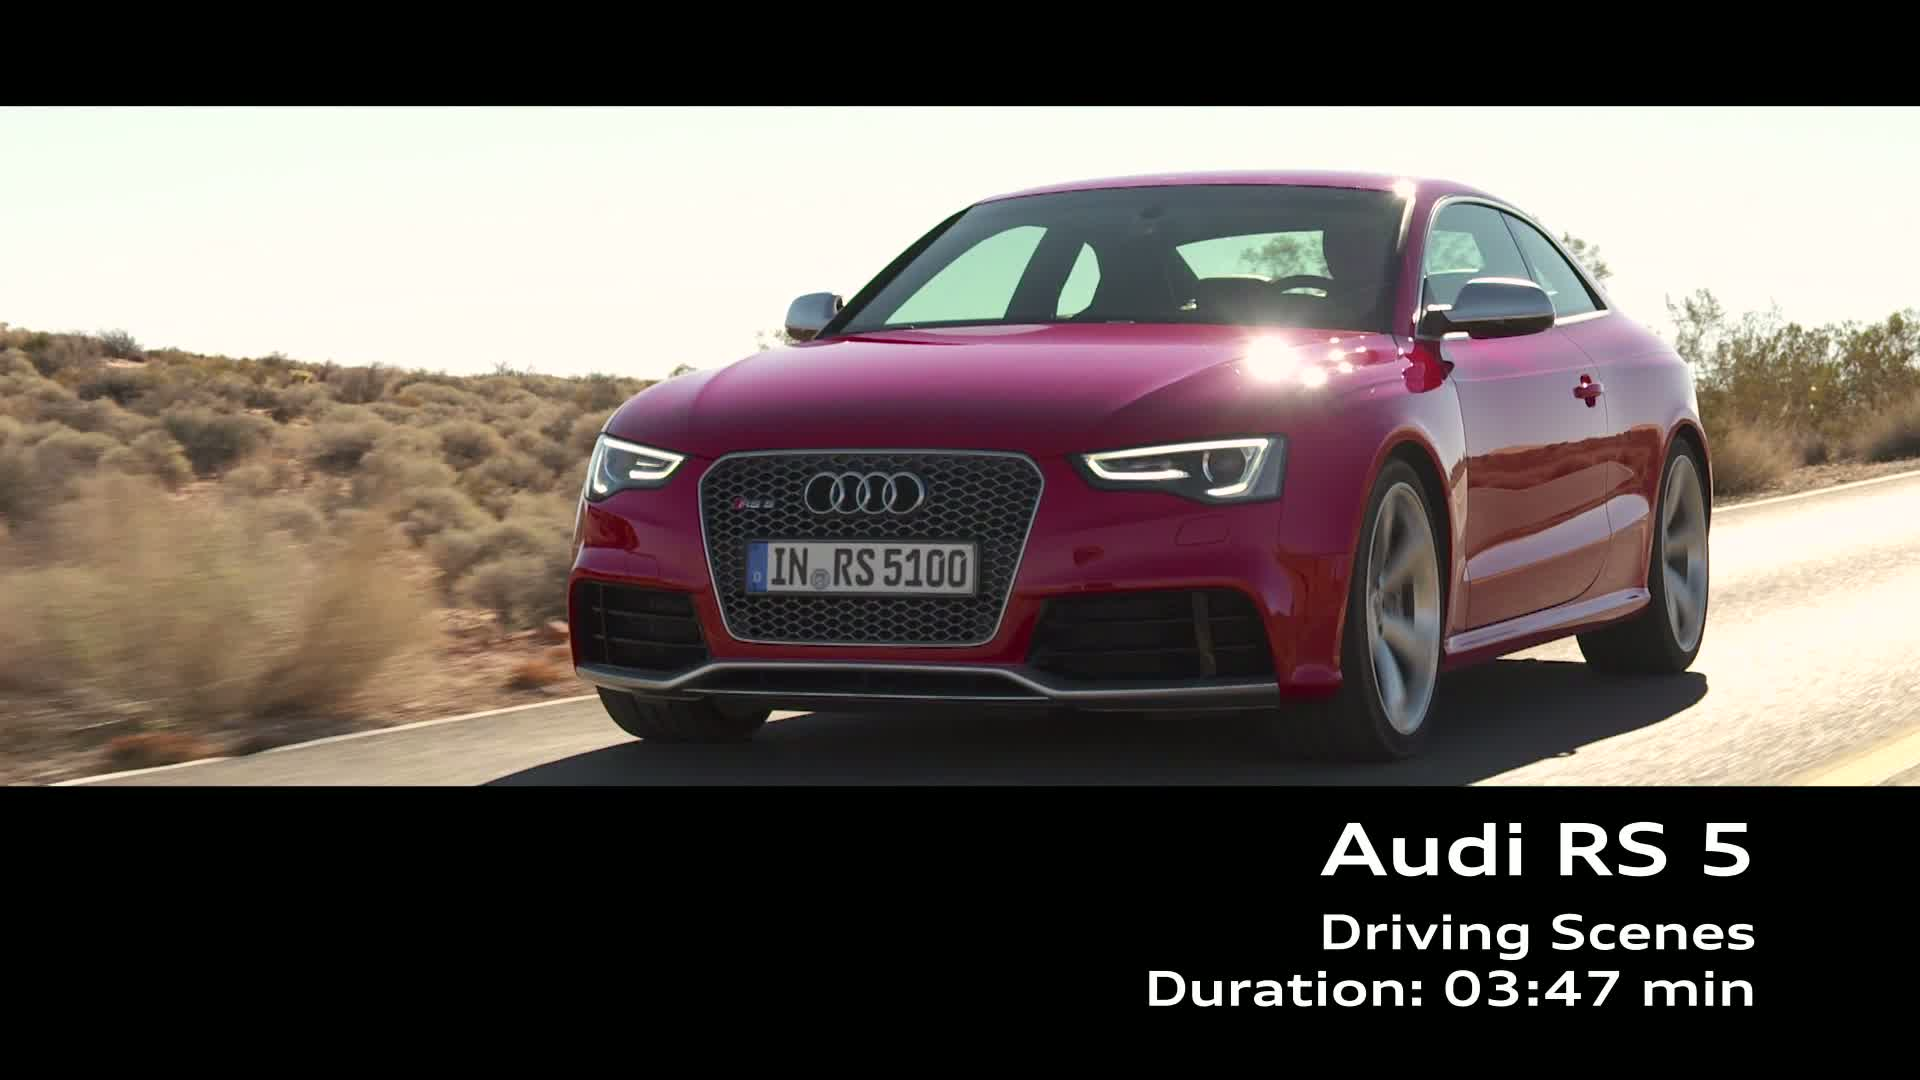 The Audi RS 5 - Footage